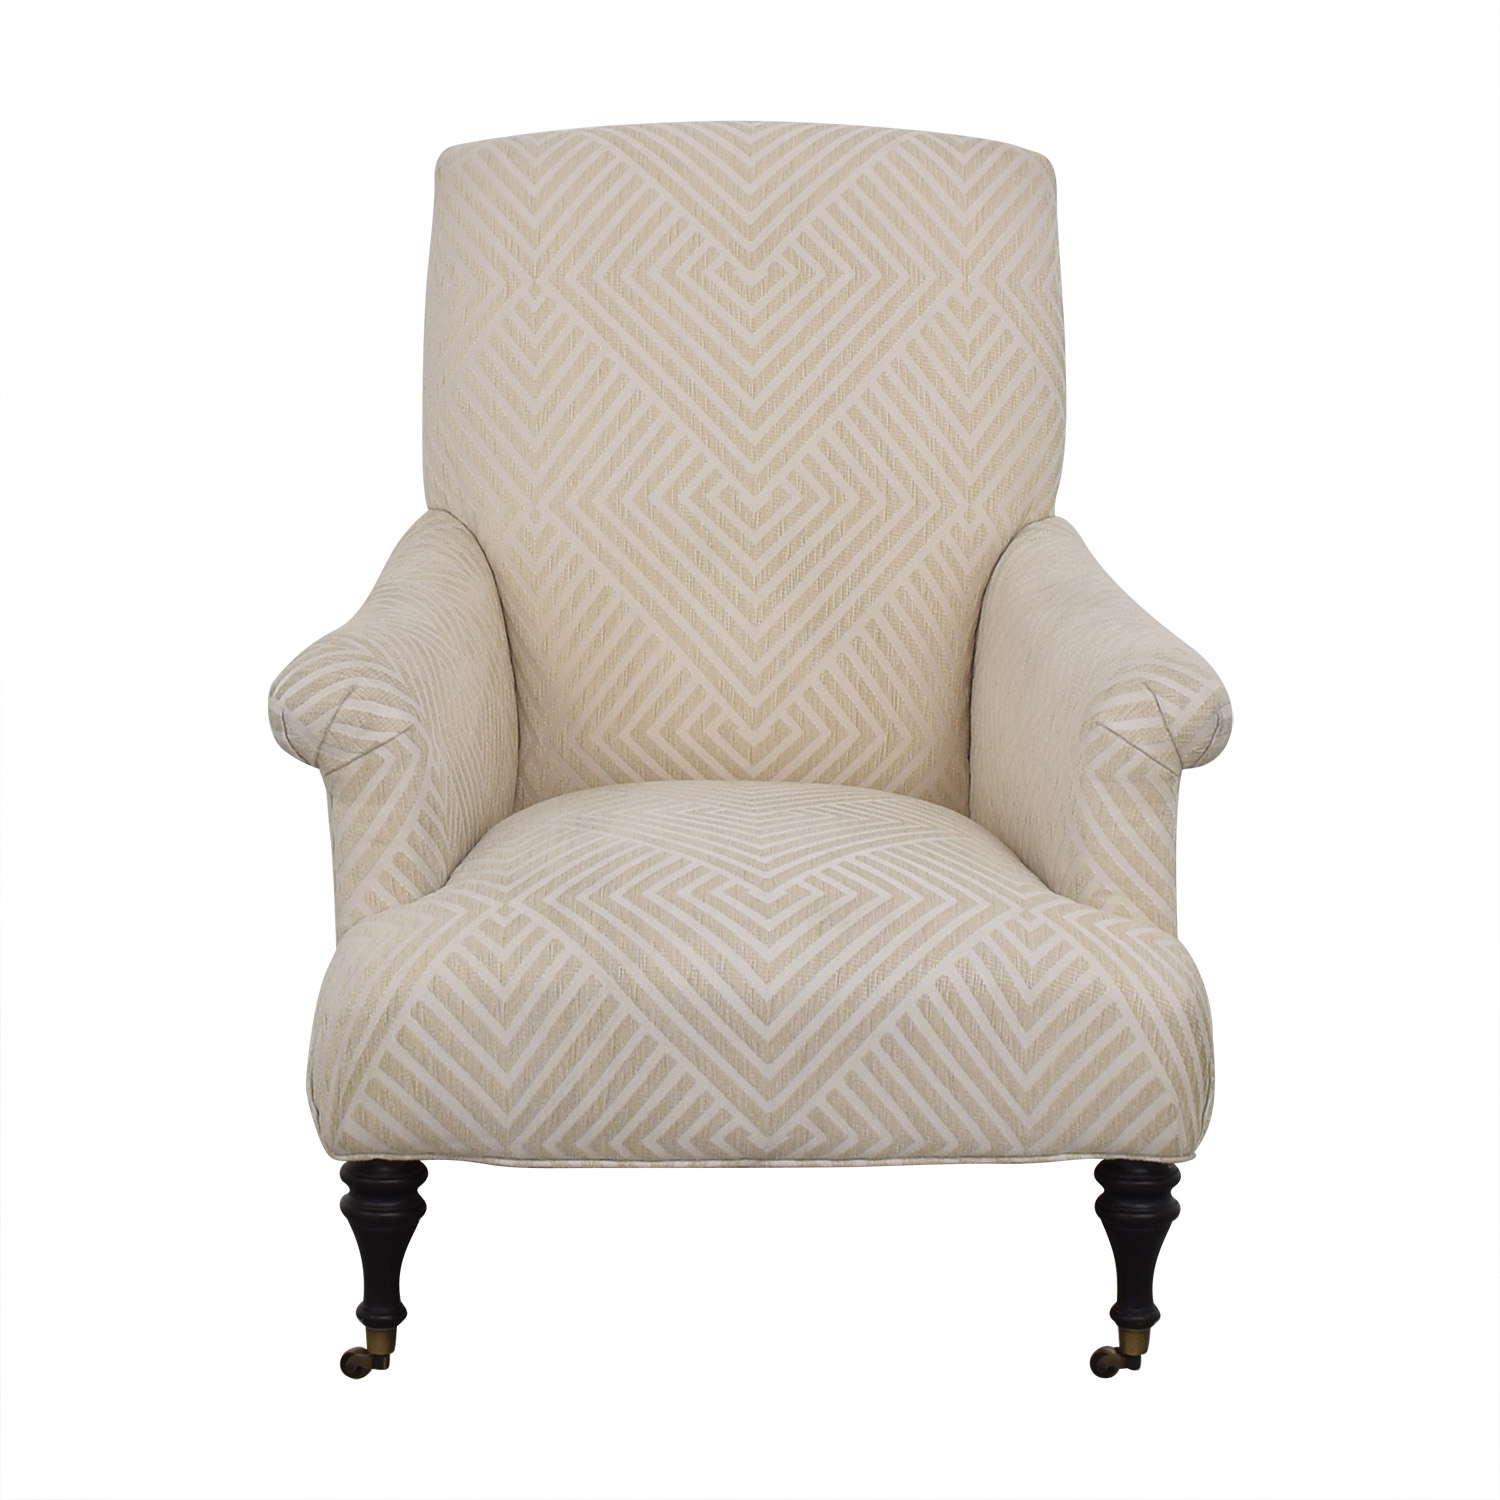 Mitchell Gold + Bob Williams Upholstered Armchair / Chairs